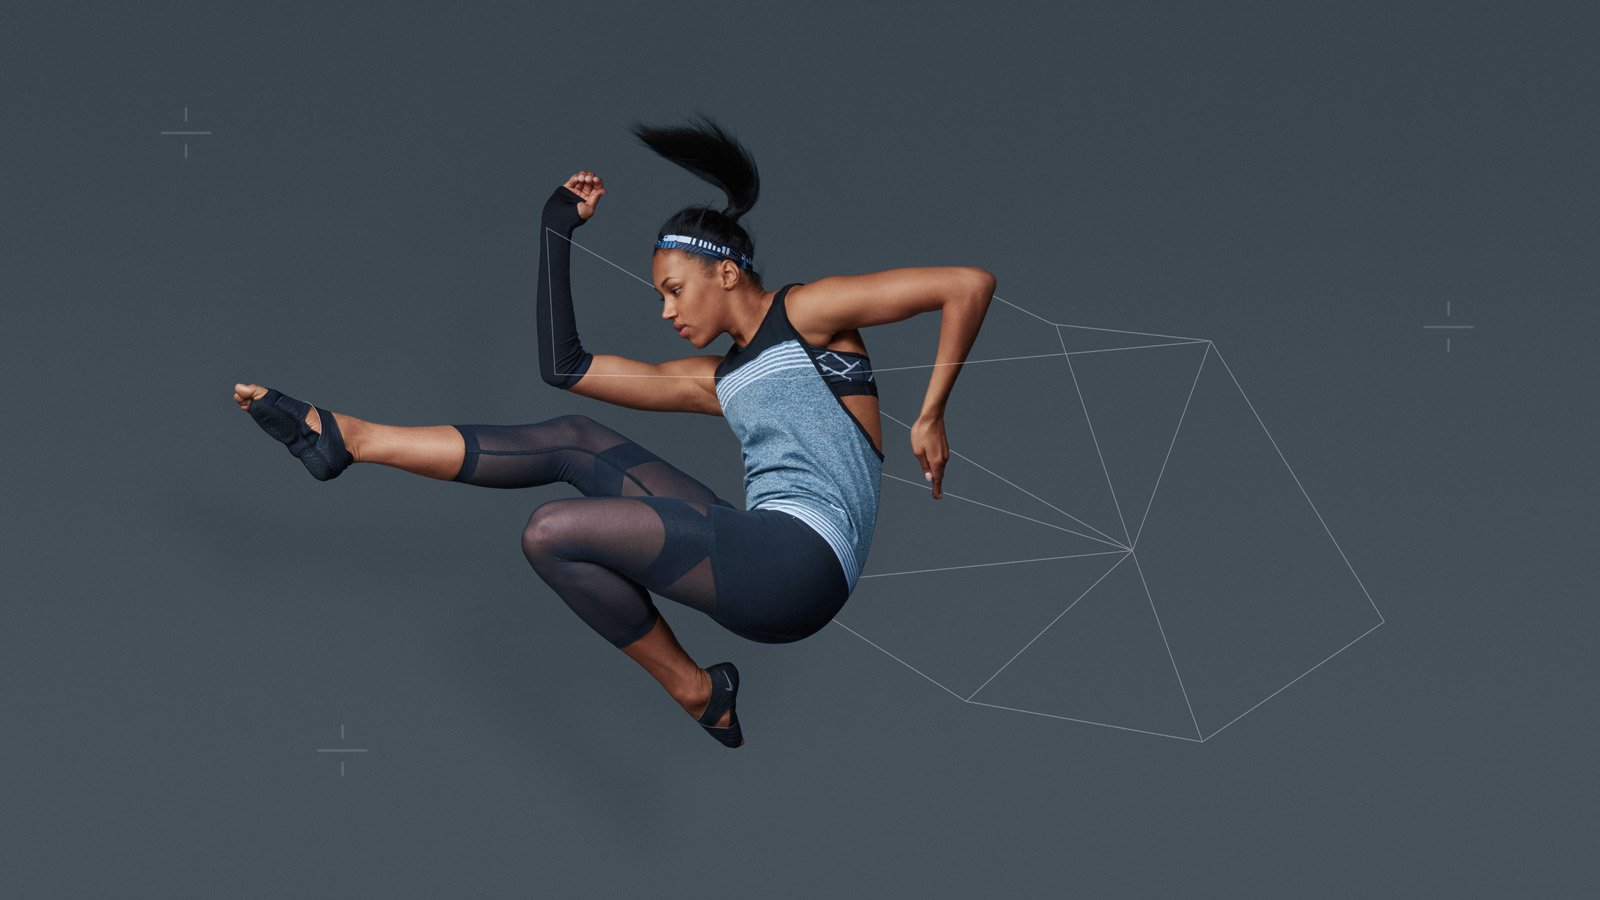 NikeWomen_FA15_Lookbook_MorganLake_WT_Geometry_1_original.jpg